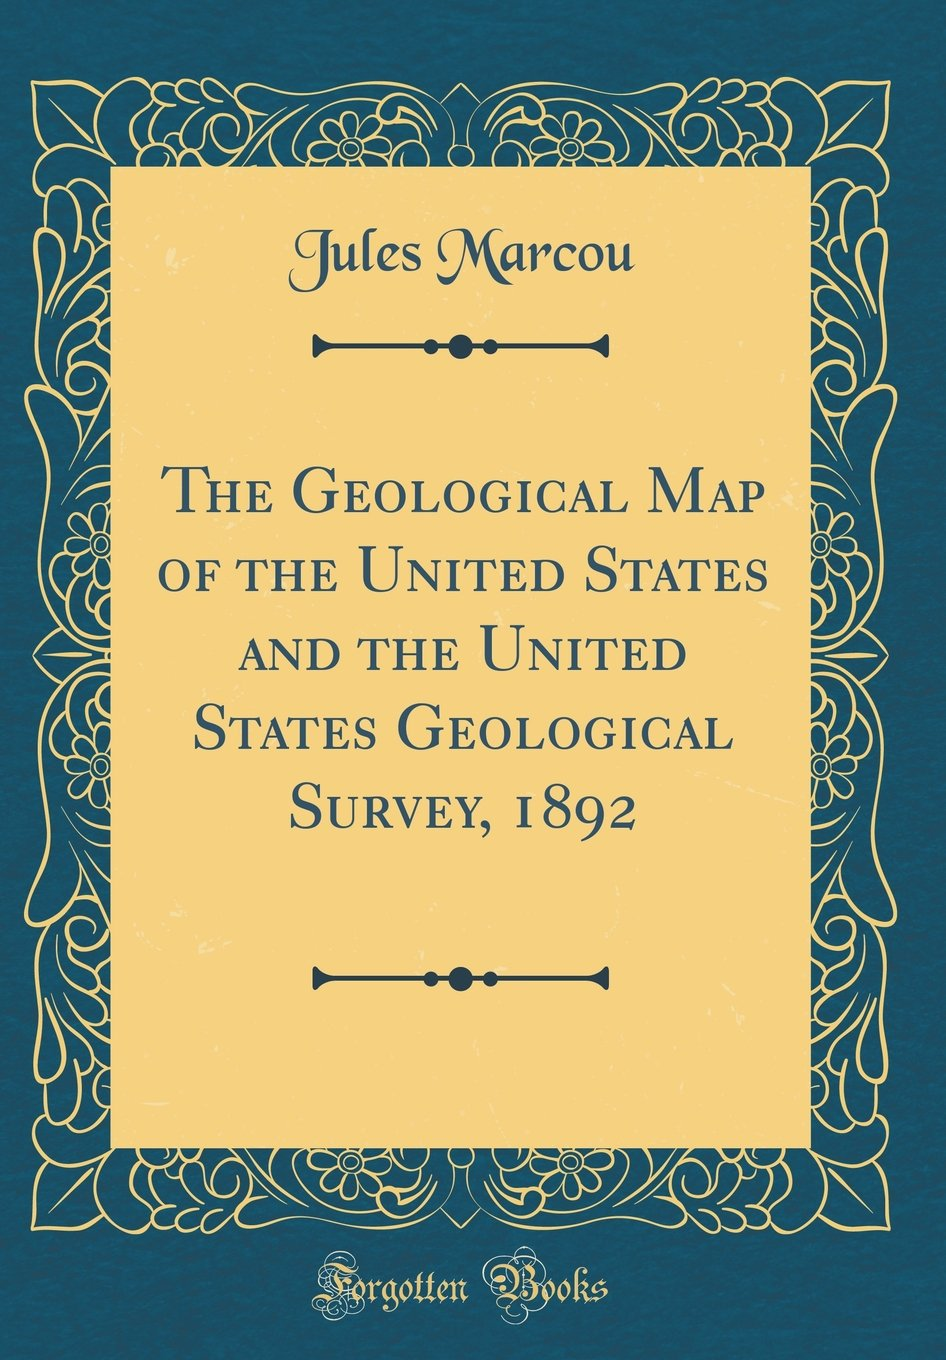 The Geological Map of the United States and the United States ...